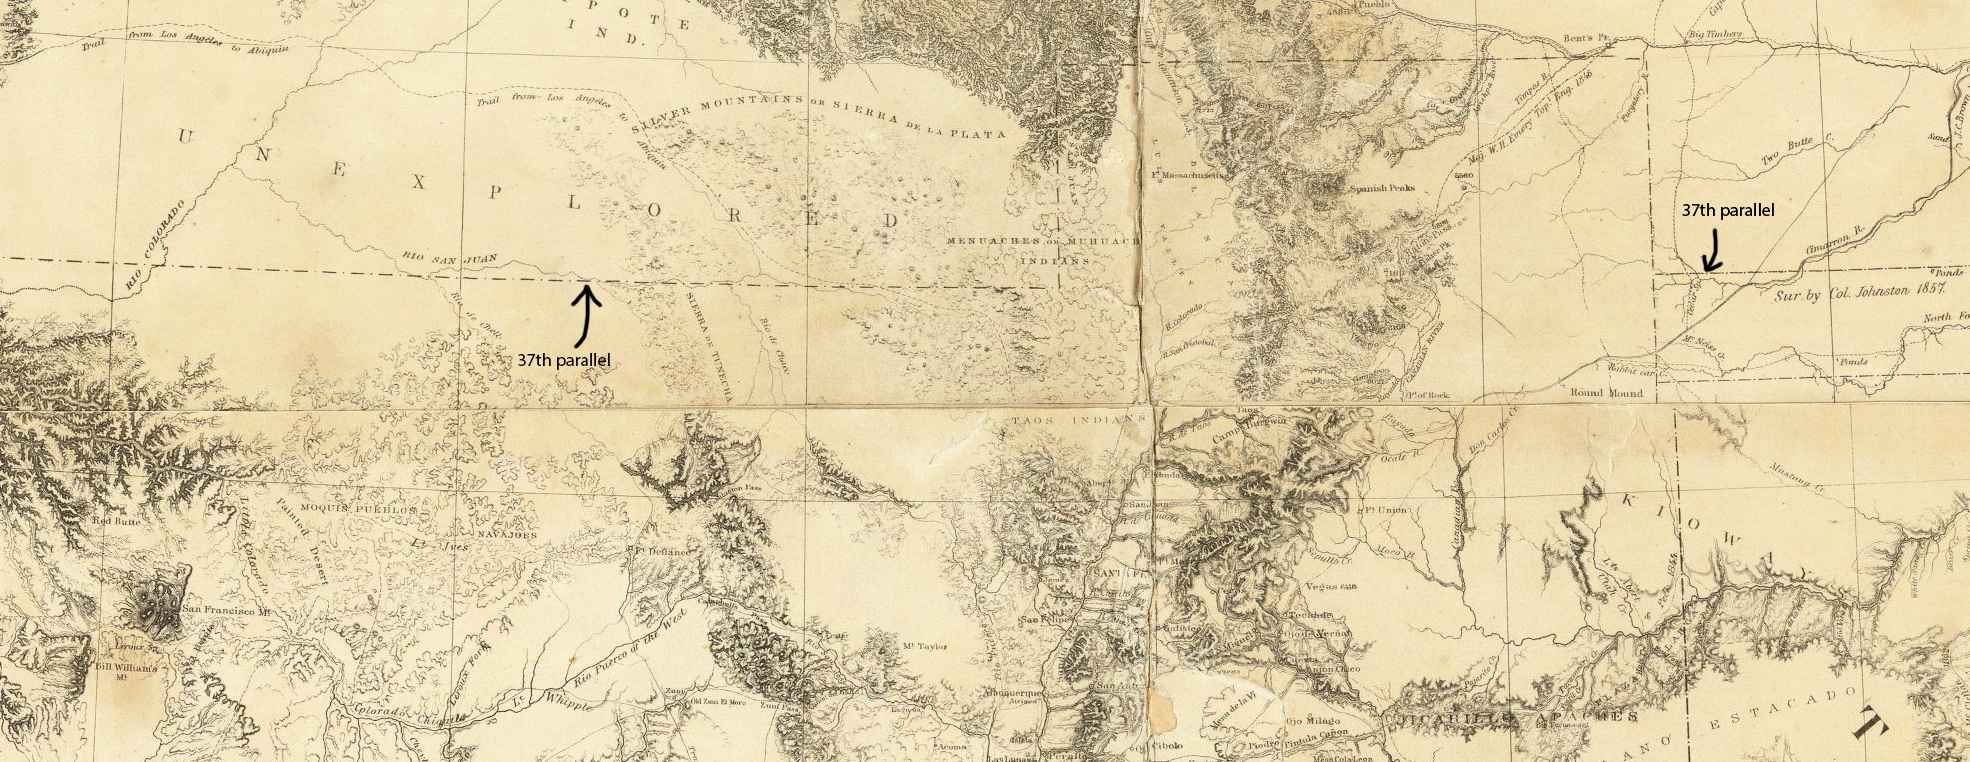 Map Of Arizona 1858.Survey 37th Parallel Project